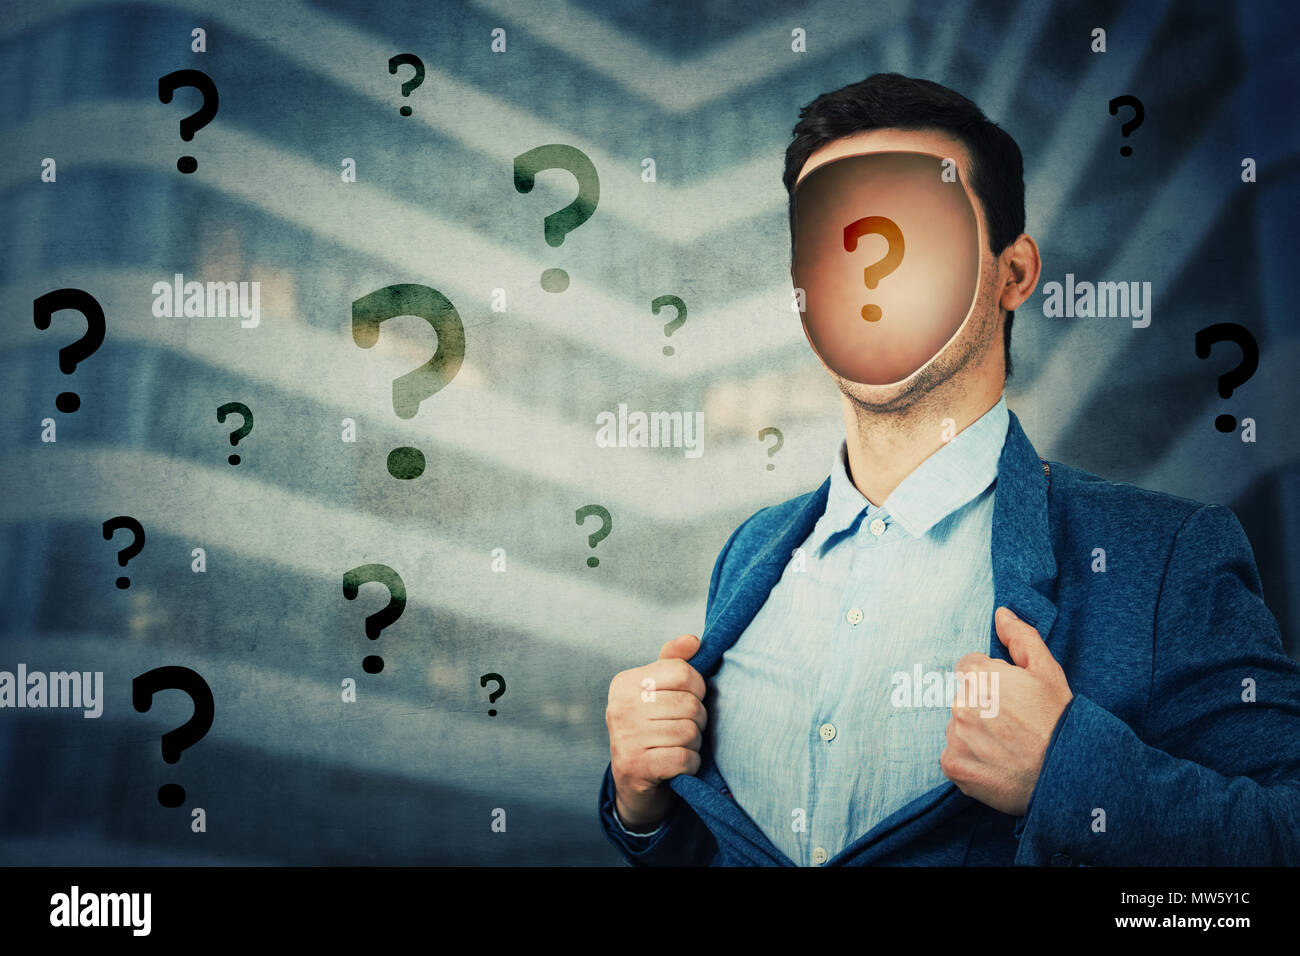 Anonymous businessman with a hole in his head instead face. Question mark inside human faceless head. Fantasy futuristic background, incognito open mi - Stock Image